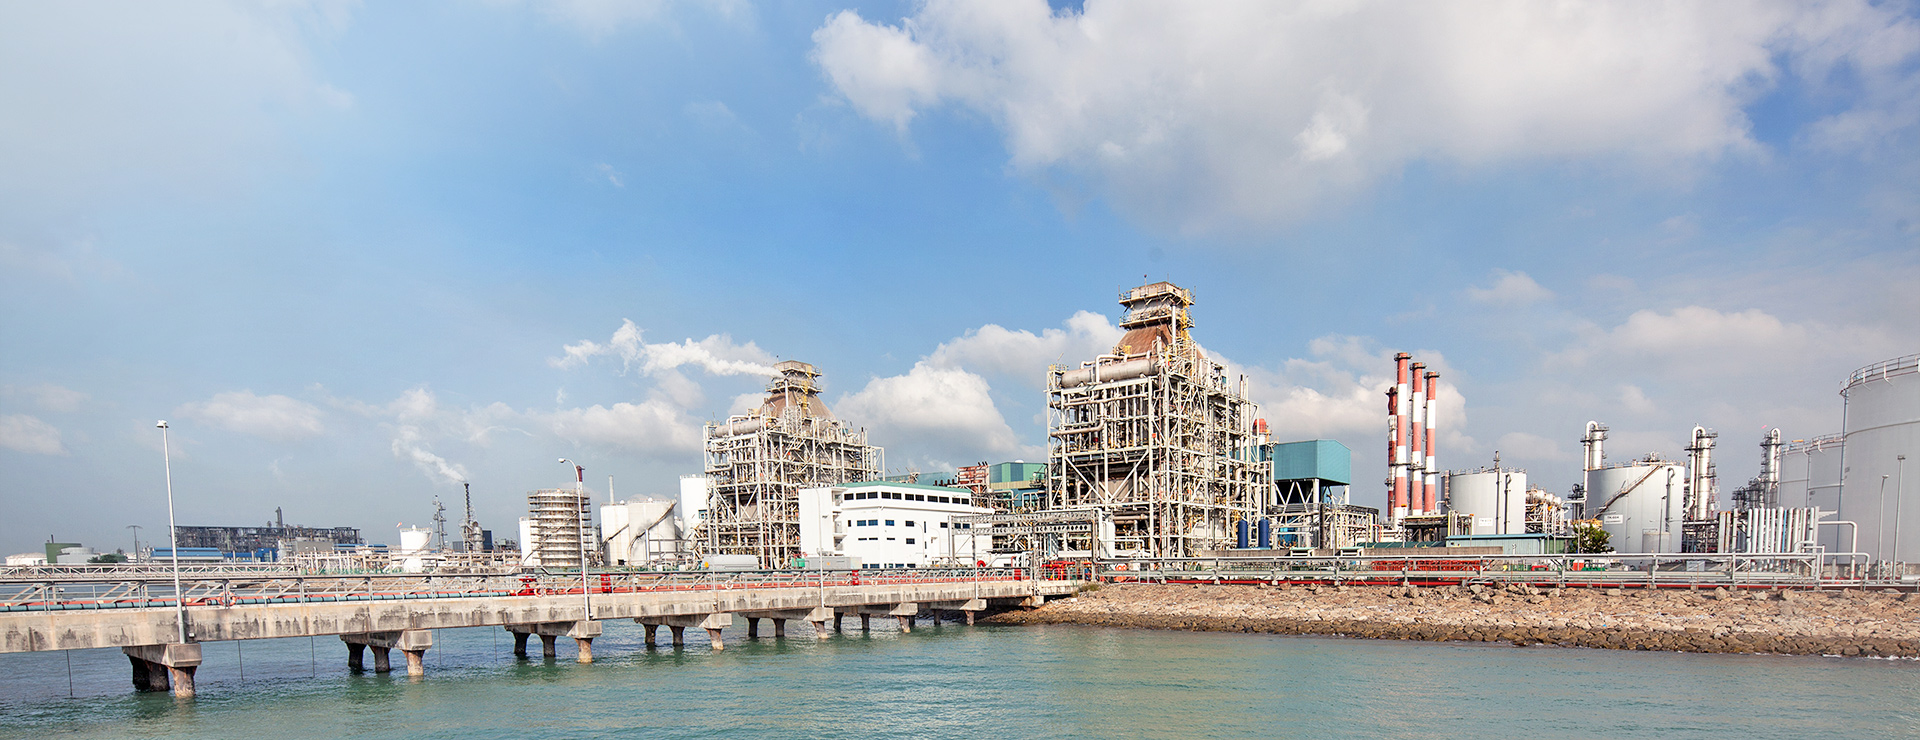 Sembcorp Energy Singapore